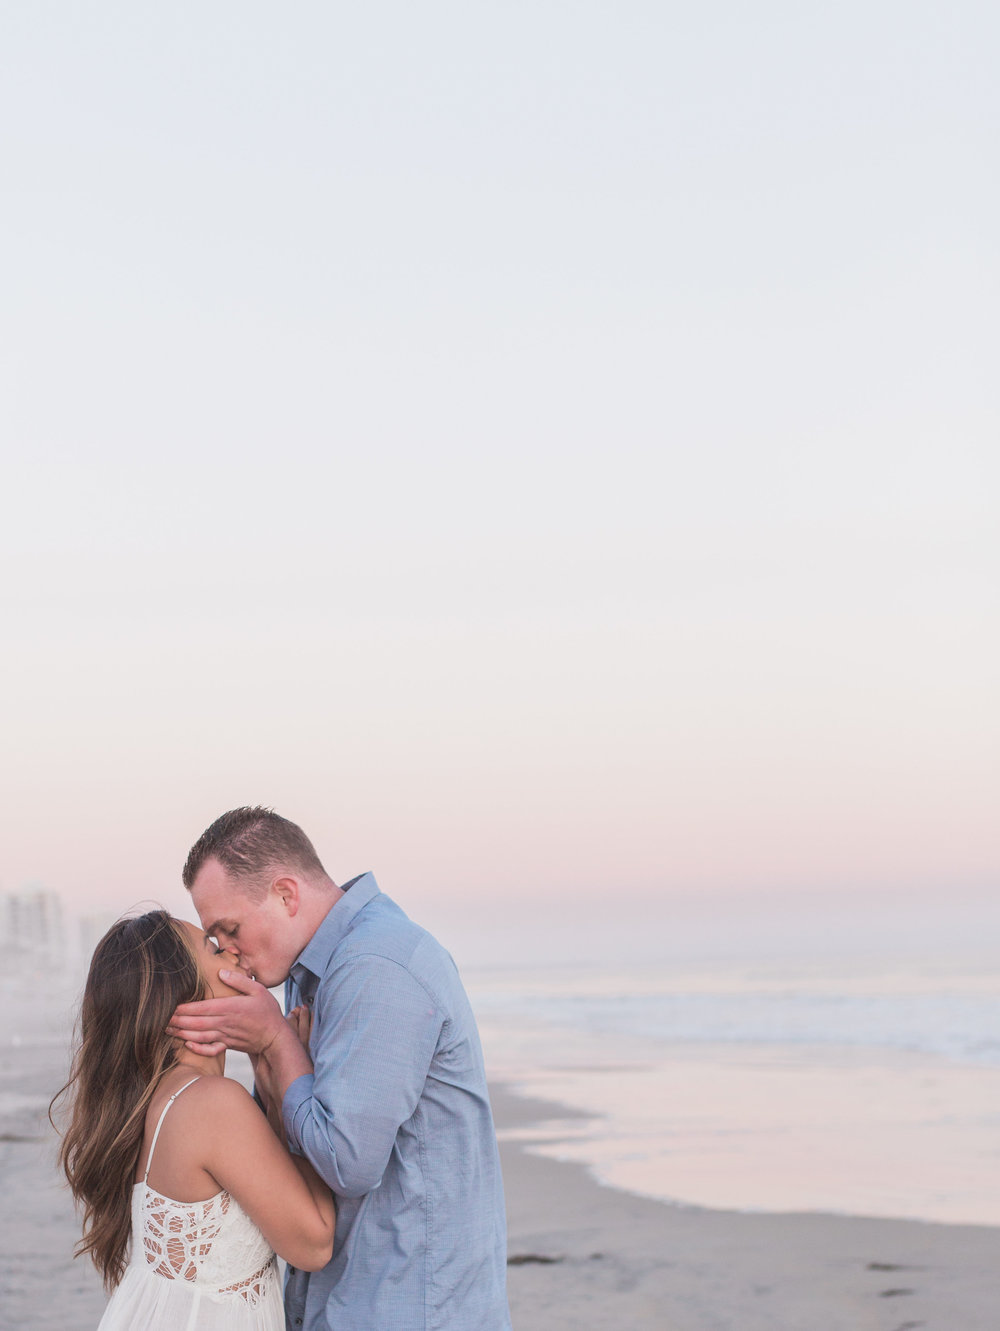 heather anderson photography, film photographer, coronado engagement session, destination weddings